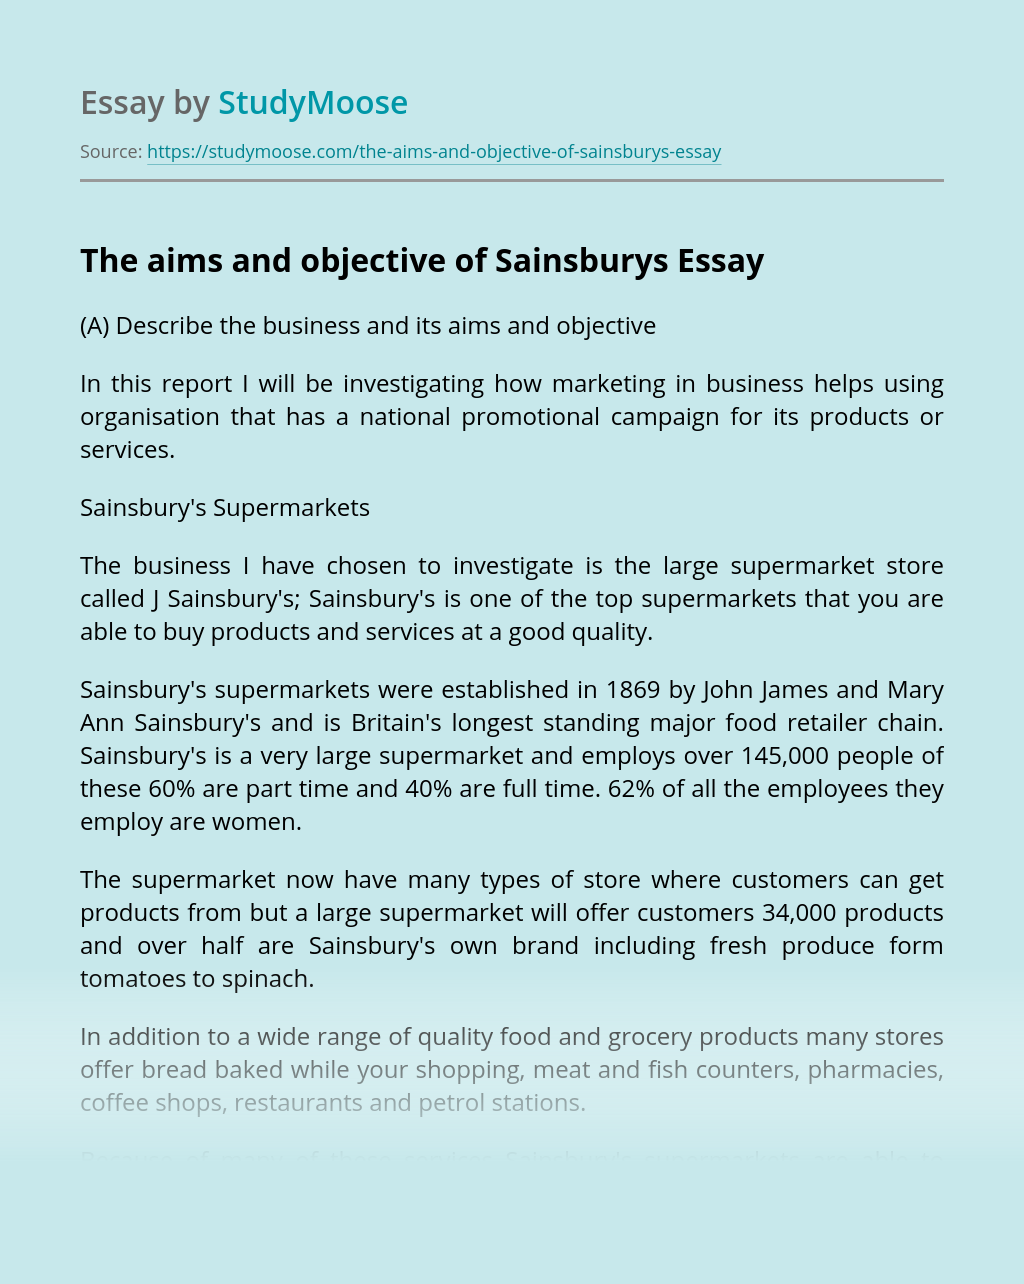 The aims and objective of Sainsburys